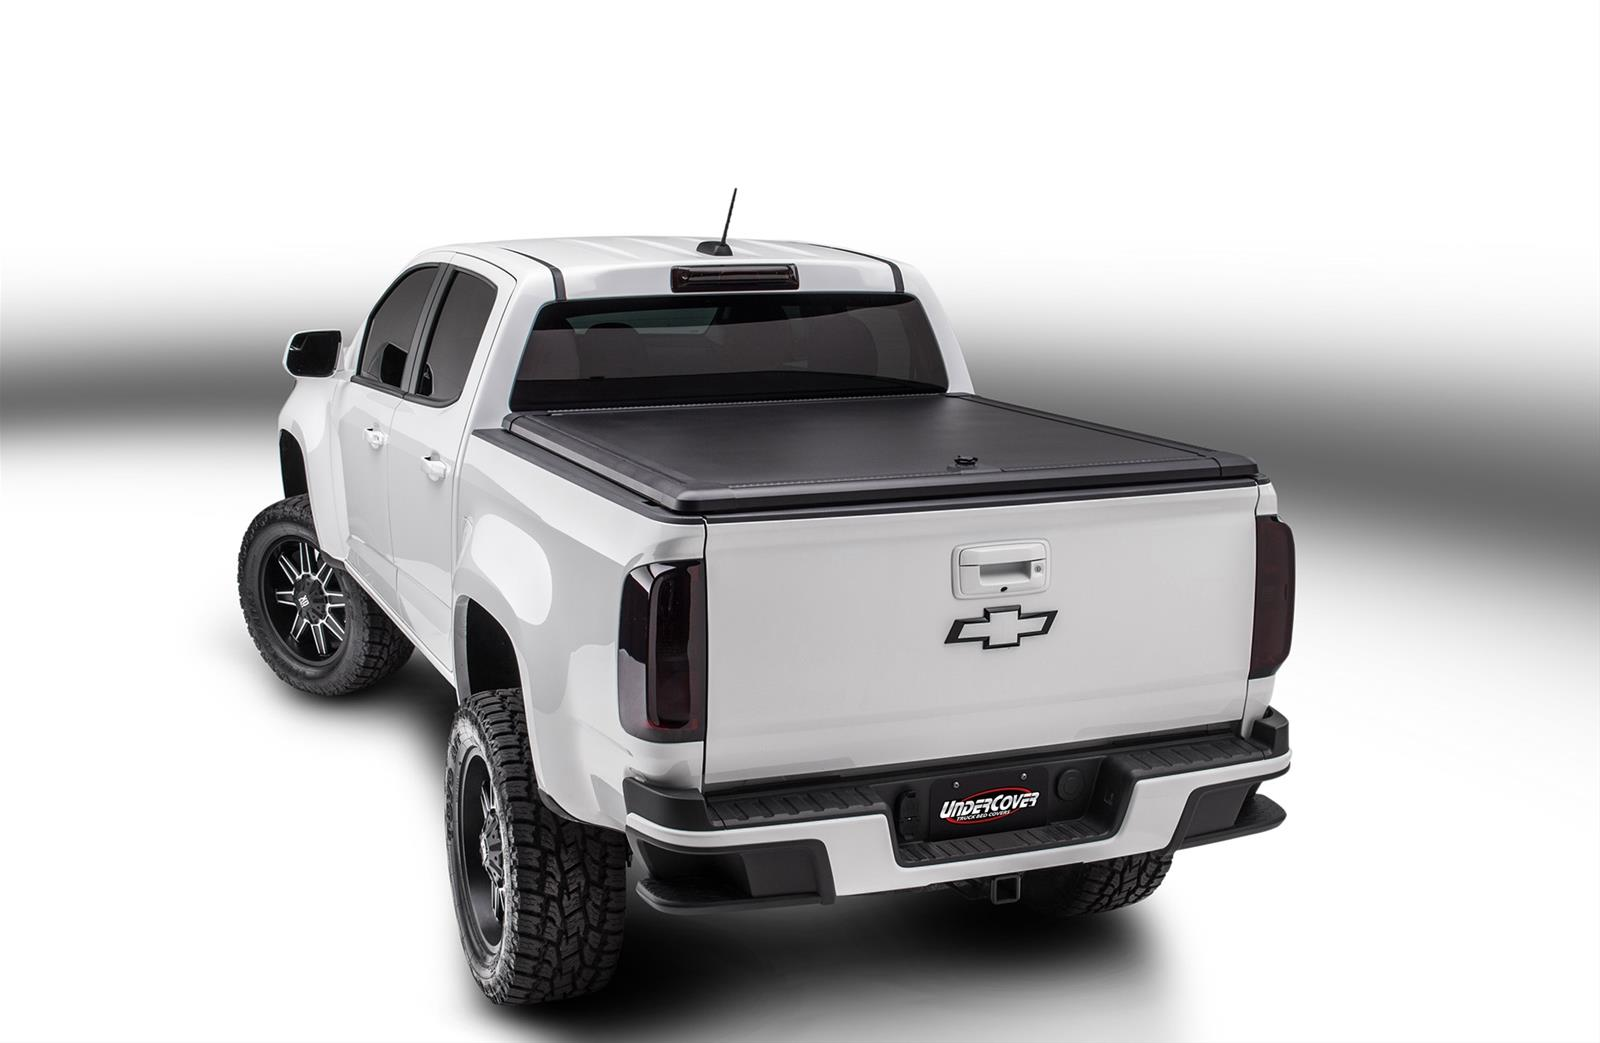 "UnderCover Ridgelander Tonneau Cover 2019-up Ram 5'7"" Bed"